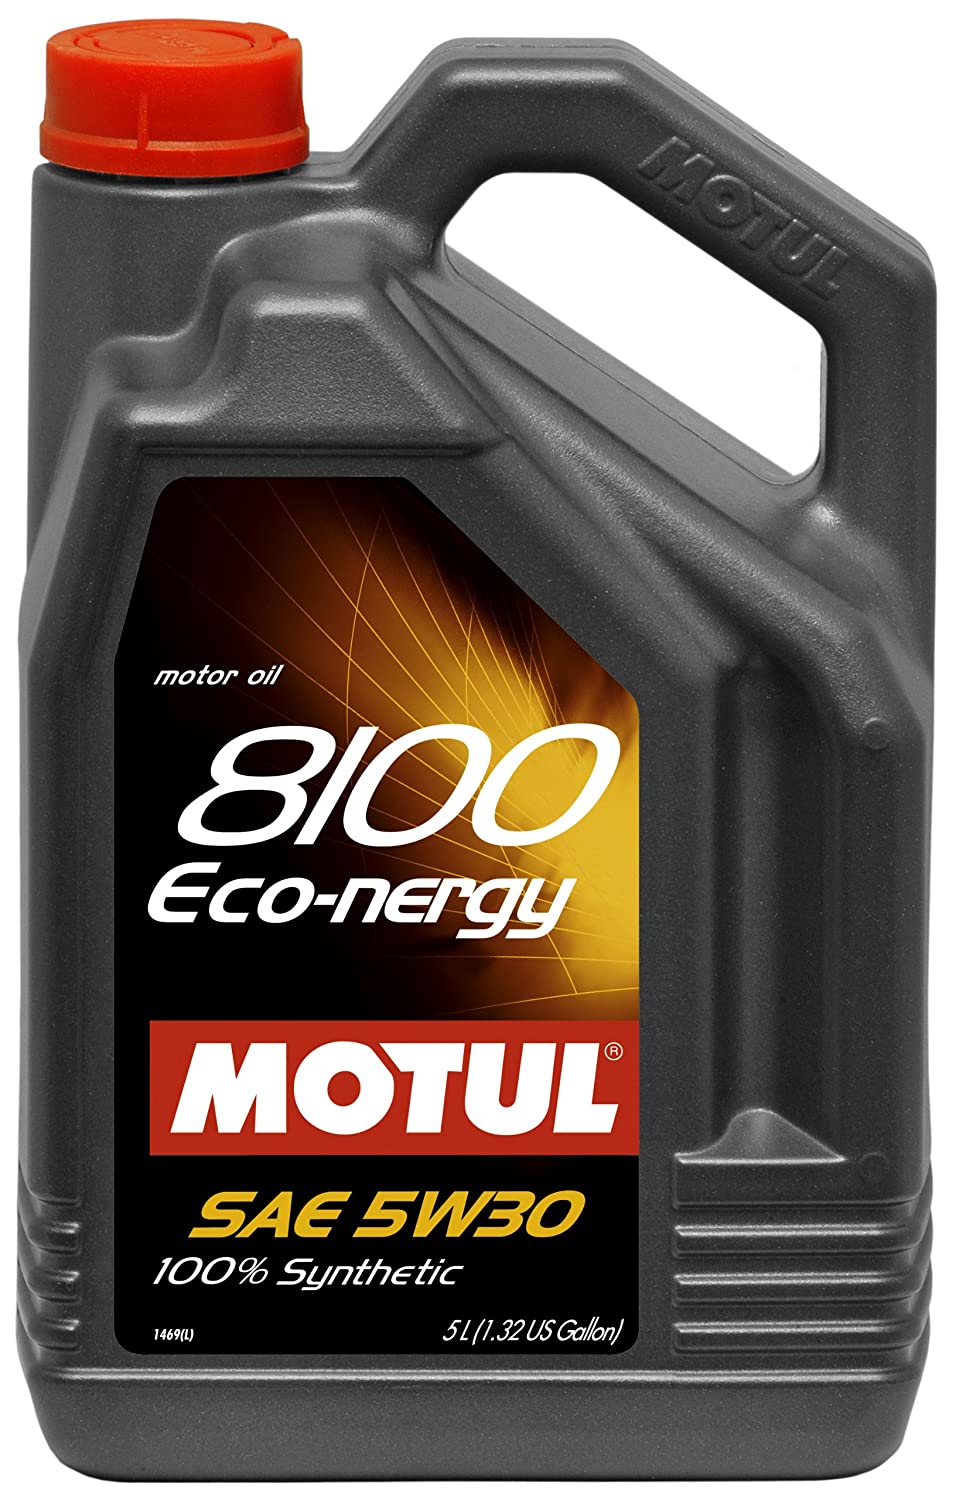 Motul MTL102898 102898 8100 Eco-nergy 5W-30 100 Percent Synthetic-5 Liter, 5. liters